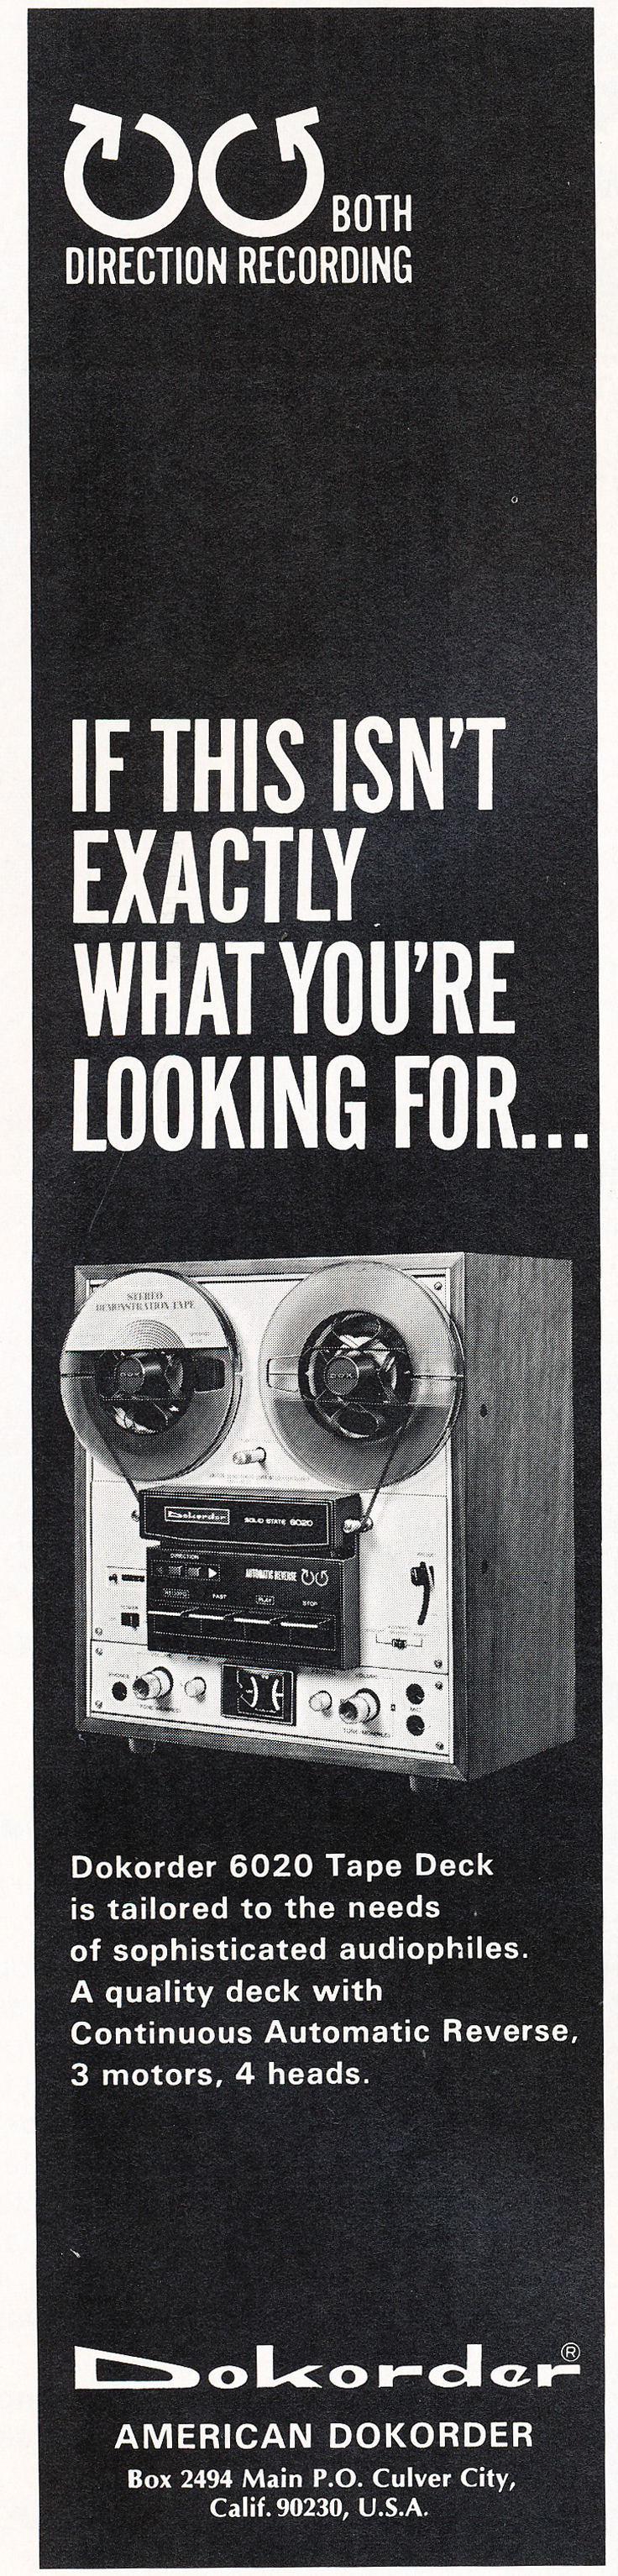 1971 ad for Dokorder 6020 reel to reel tape recorder in Reel2ReelTexas.com's vintage recording collection